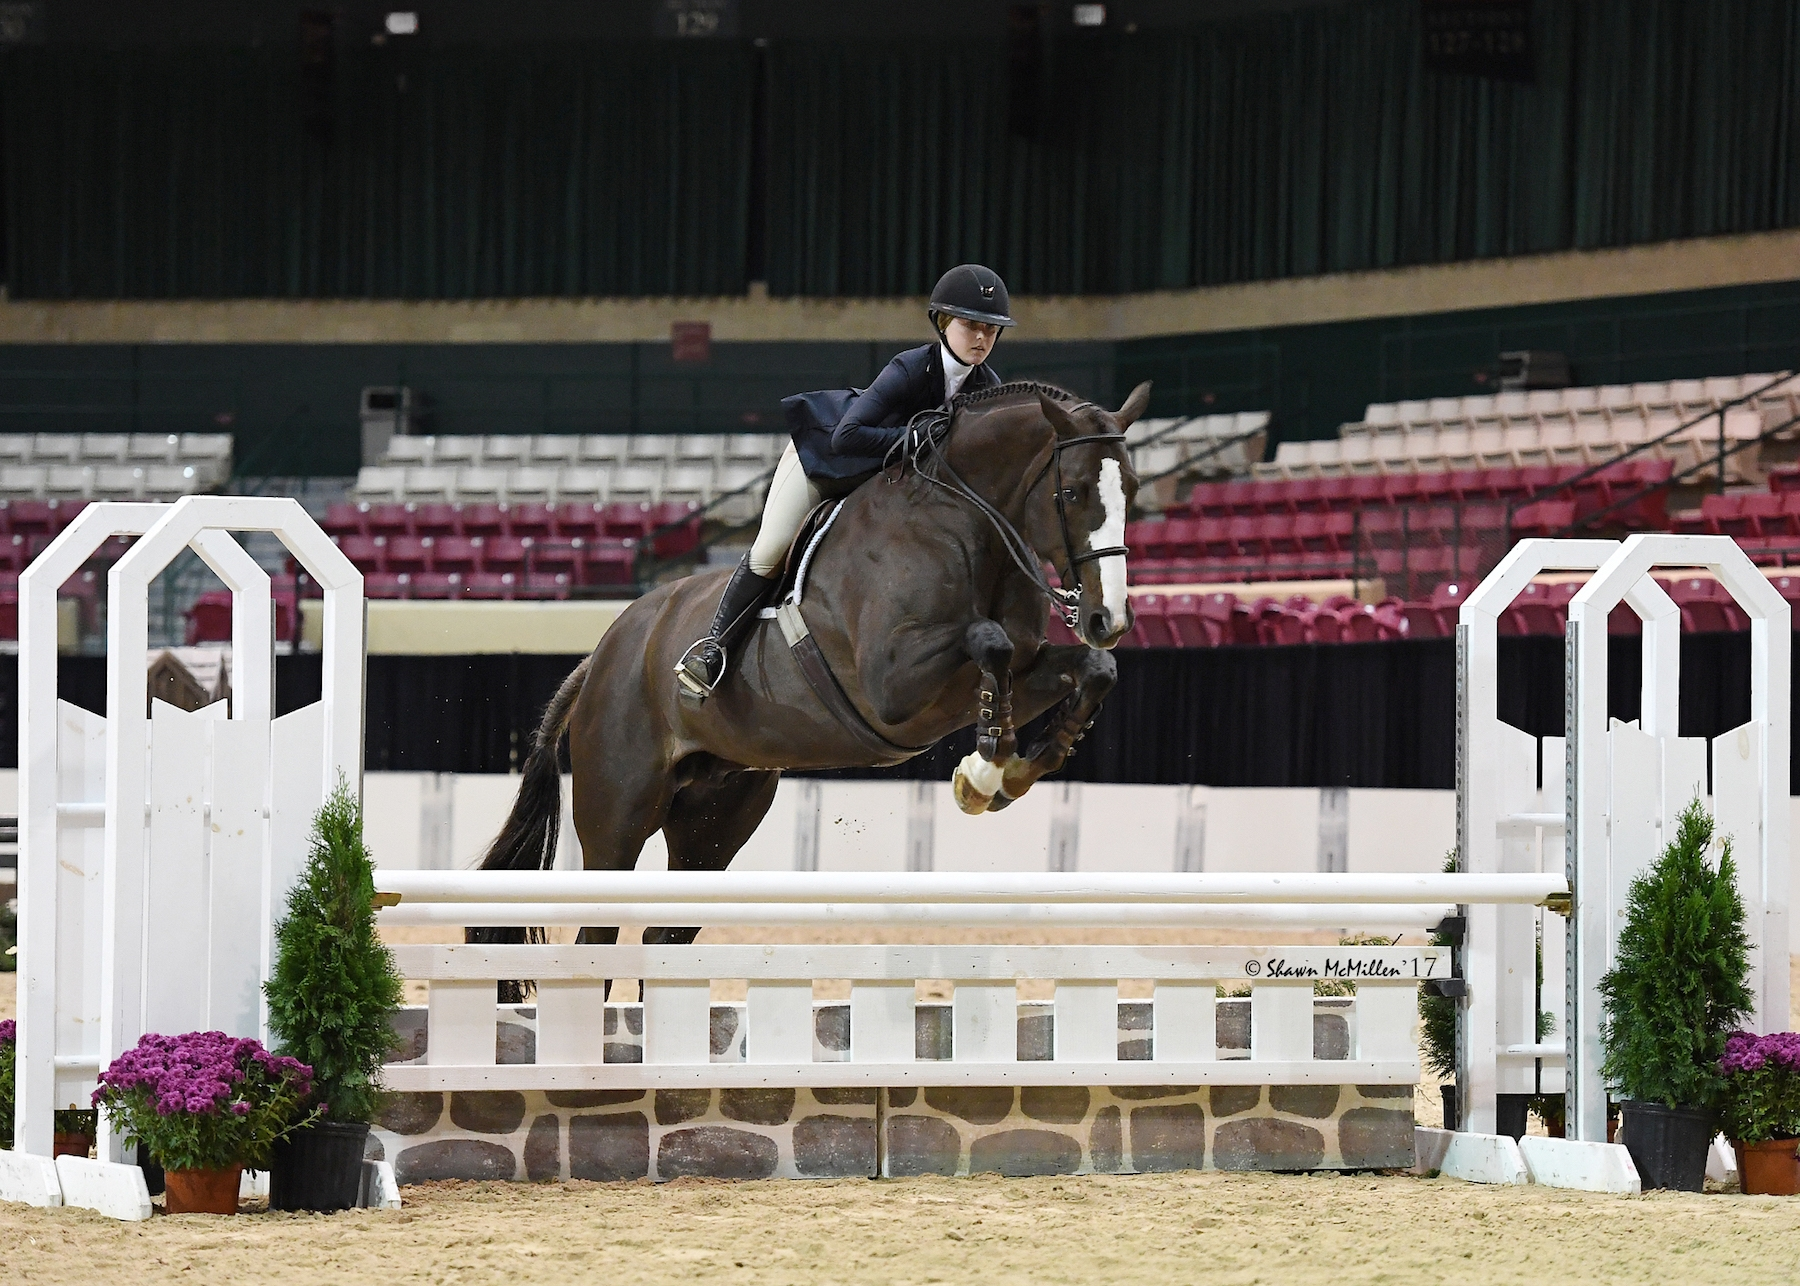 Madeline McManus of Owings Mills, MD, won the 2017 MHSA Gittings Horsemanship Finals riding her own Invesco.<br><b>Photo by <a href='http://www.shawnmcmillen.com/' target='_blank'>Shawn McMillen Photography</a></b>